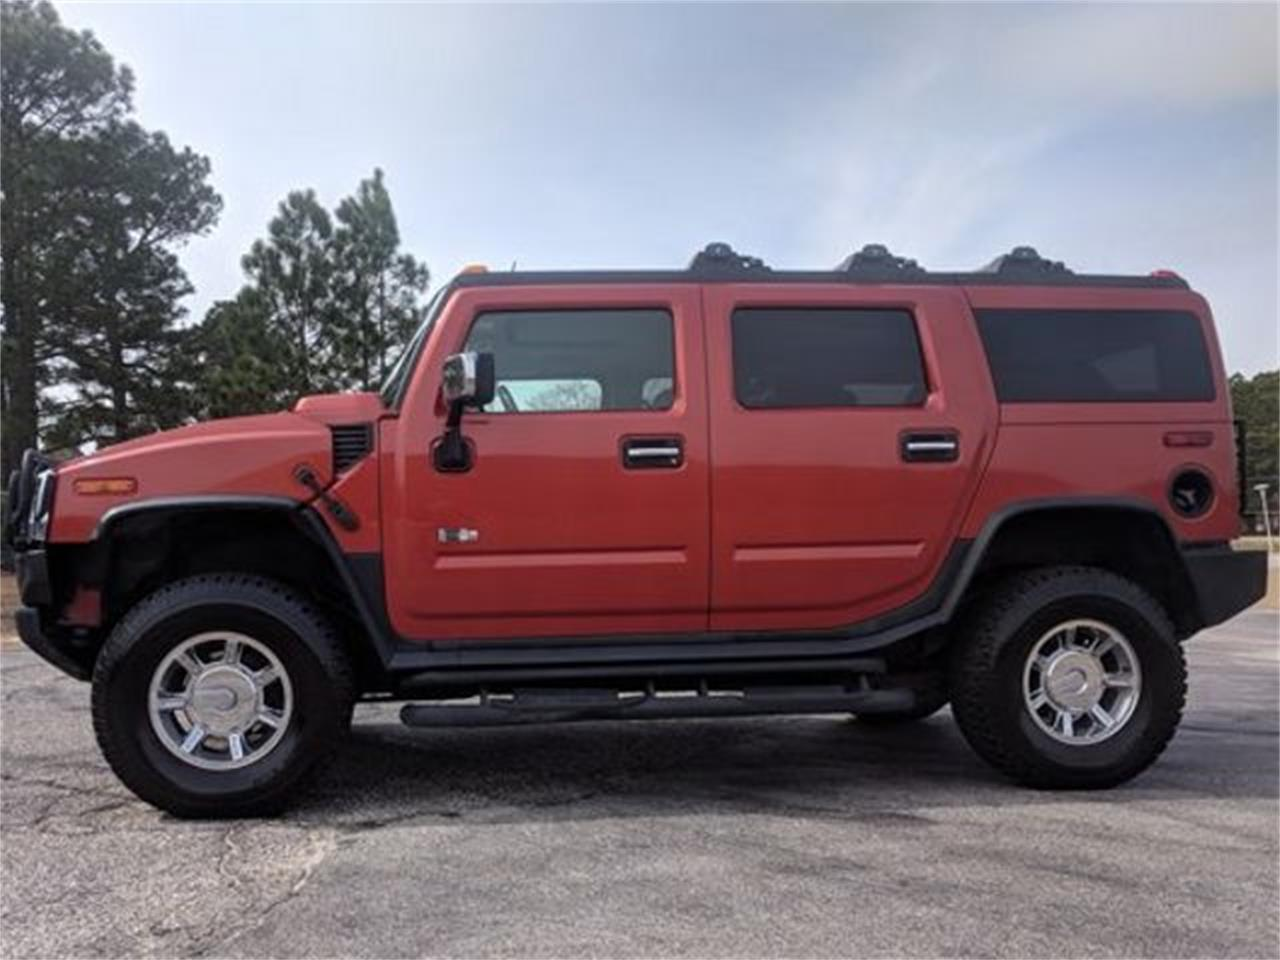 2003 Hummer H2 for sale in Hope Mills, NC – photo 6